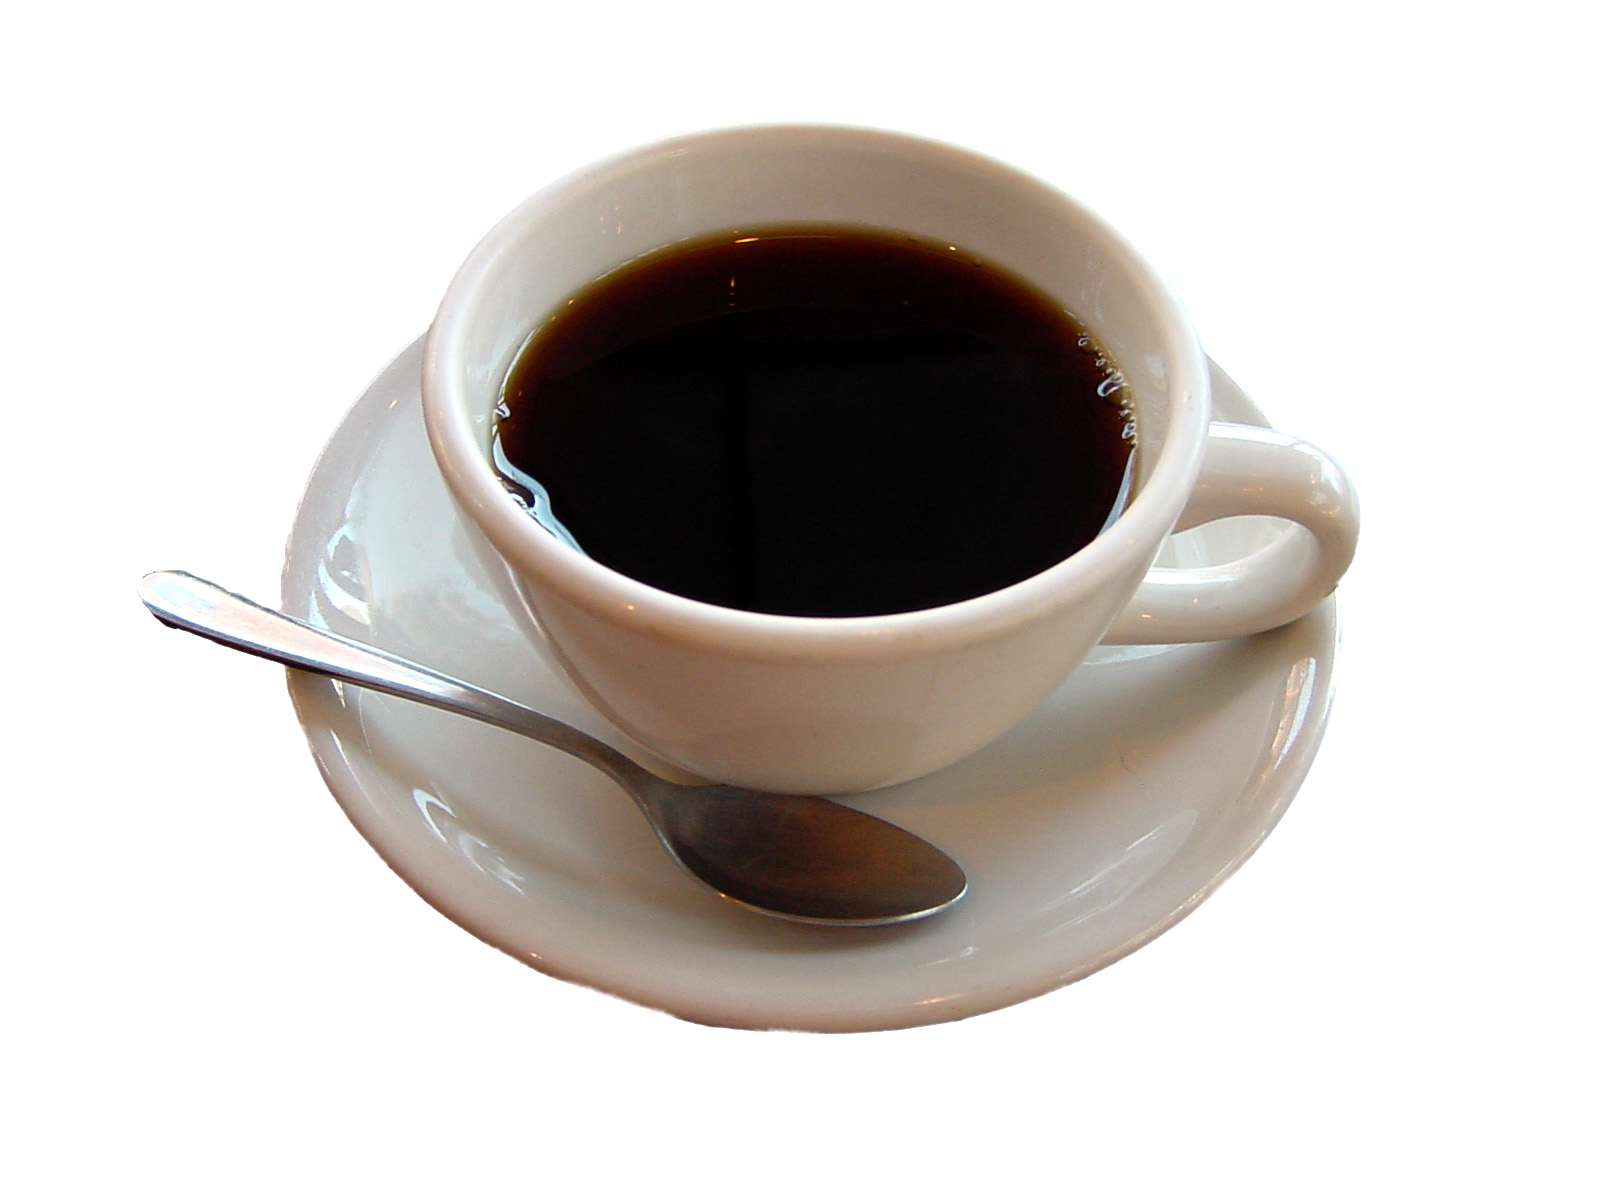 Cup PNG Image | Coffee png, Aesthetic coffee, How to order ...